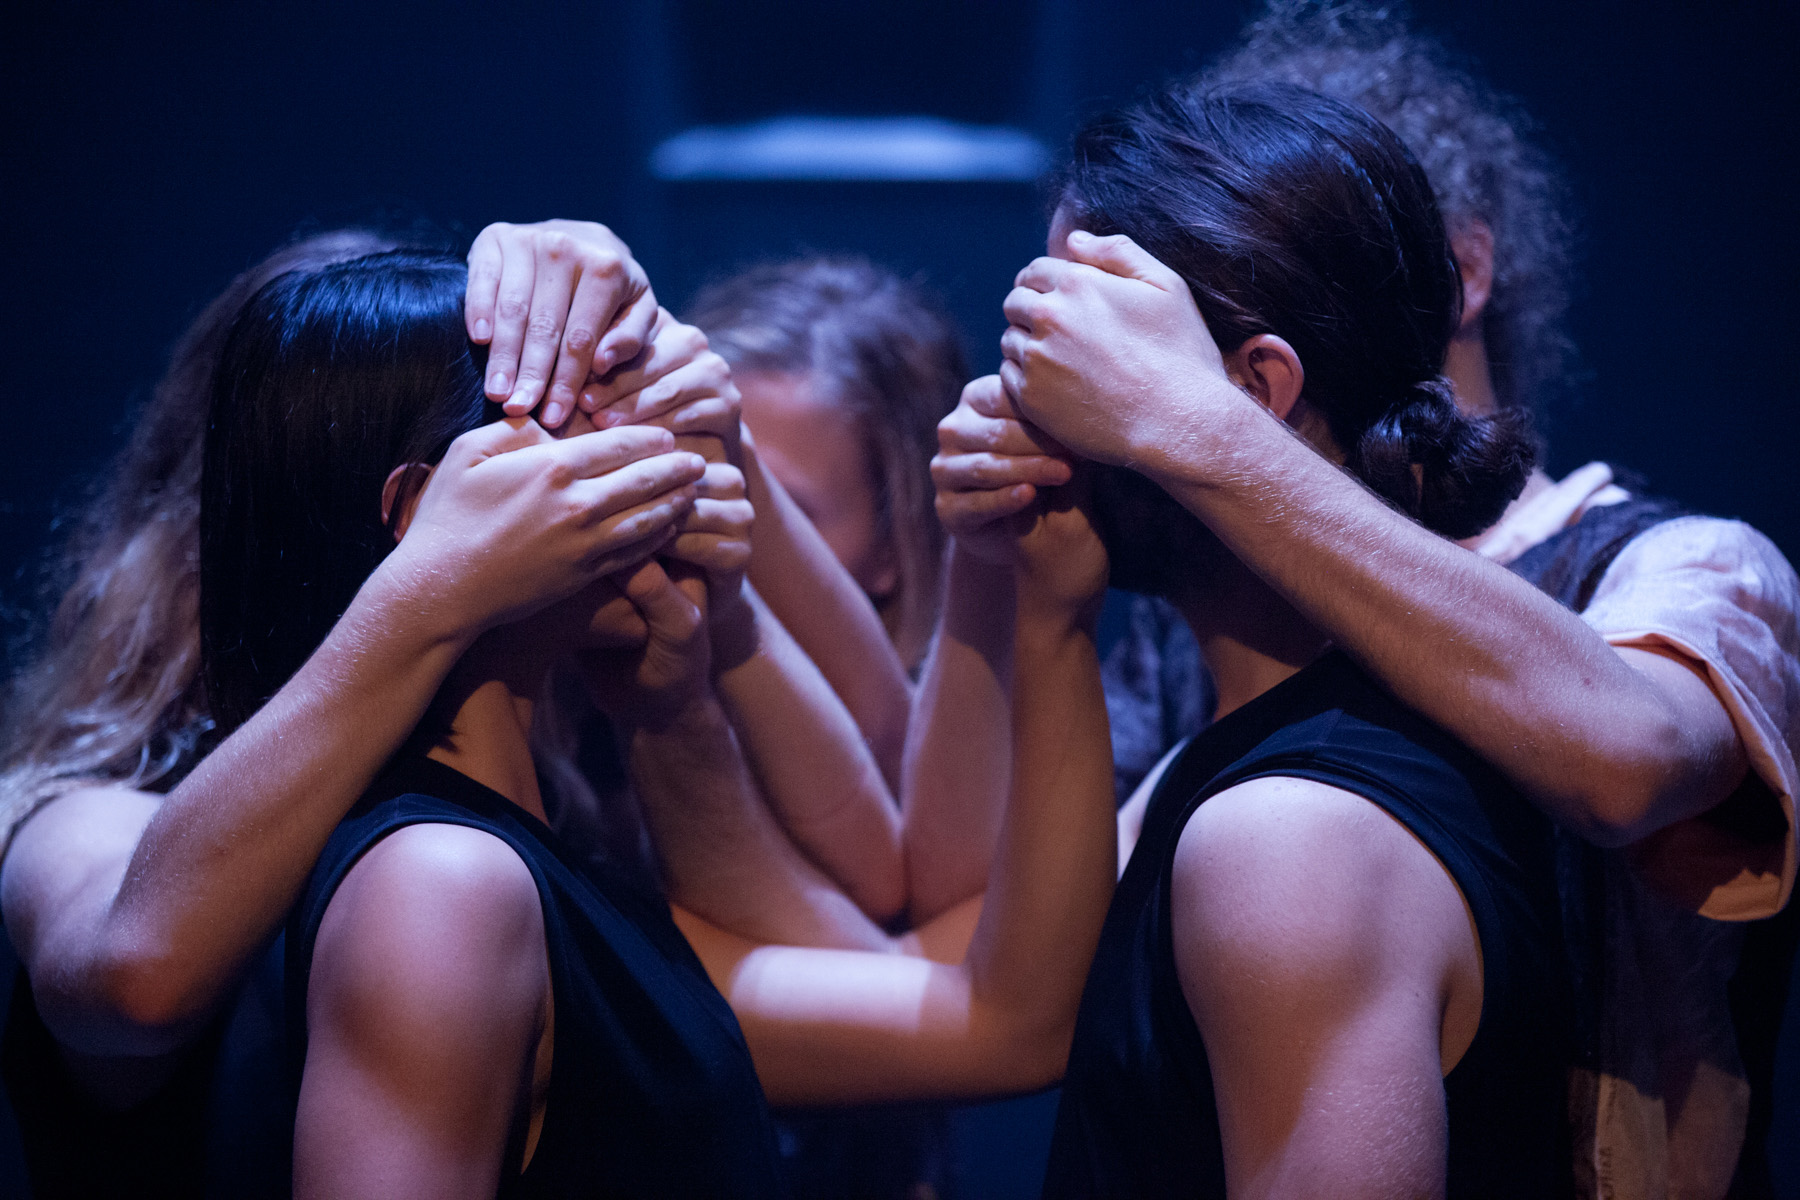 If Form was Shifted - Dancenorth, Choreographed by Ross McCormack